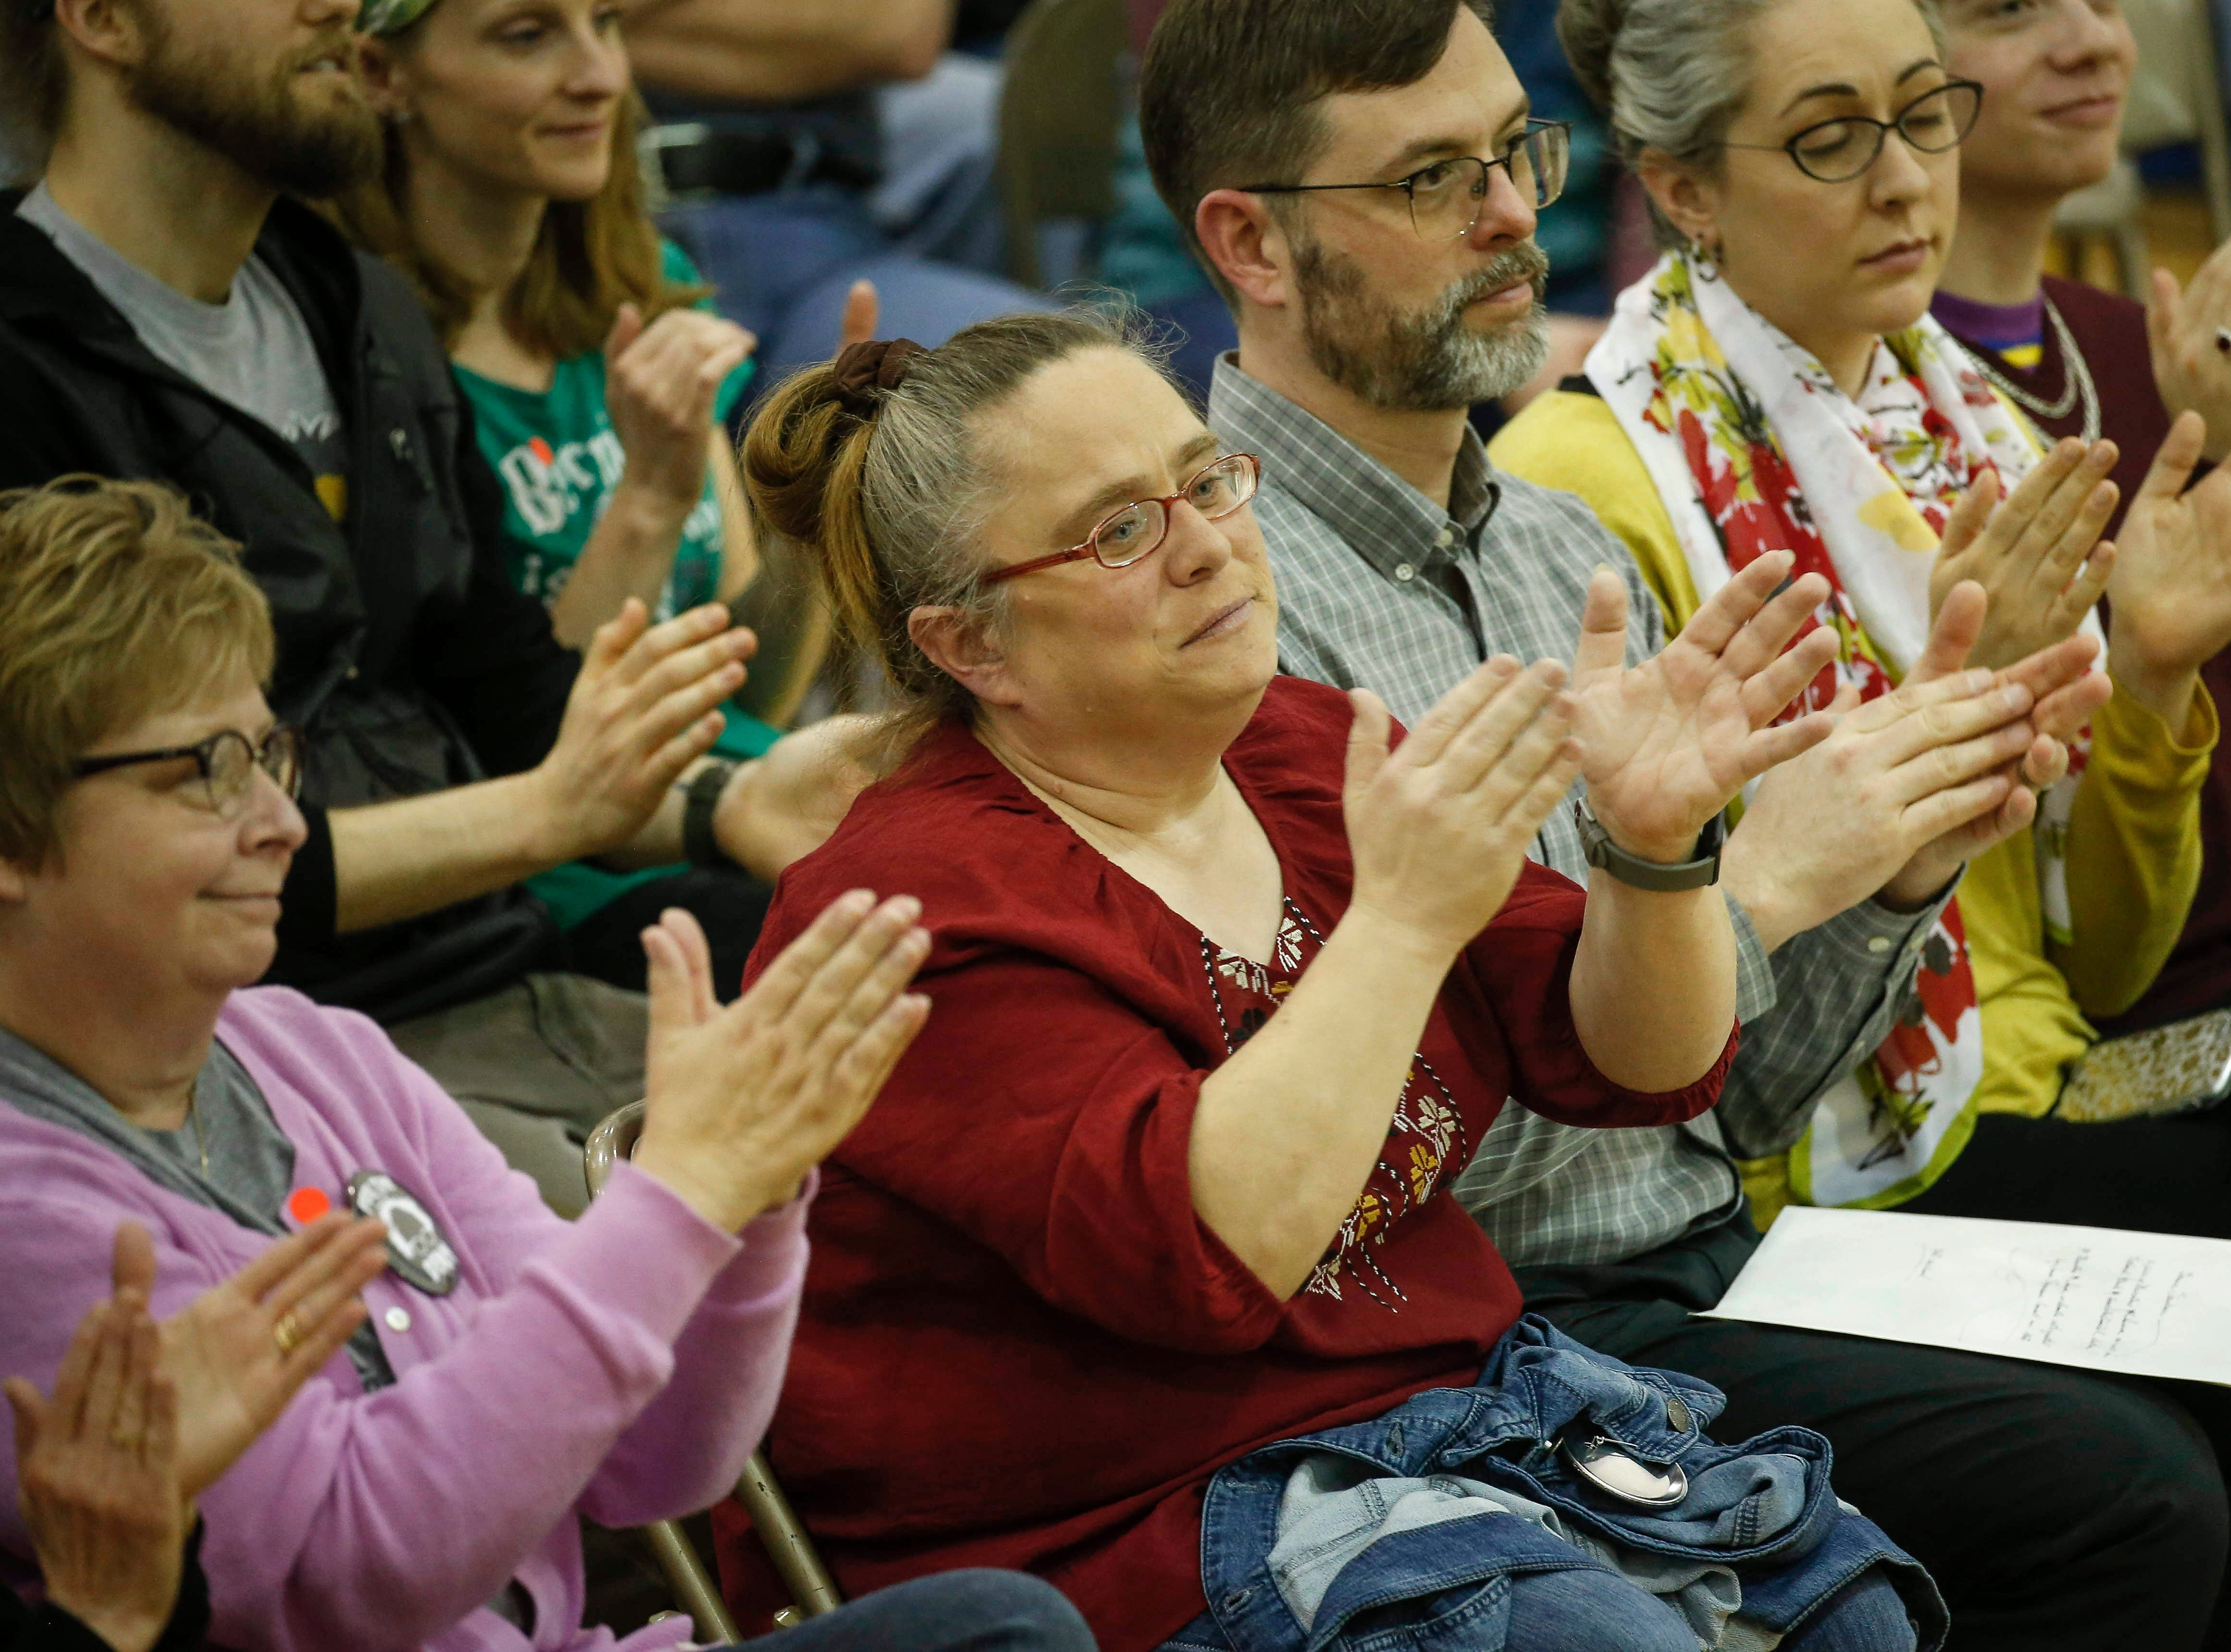 Supporters of Democratic presidential hopeful Bernie Sanders applaud as he speaks during a town hall style meeting at West Middle School in Muscatine on Saturday, April 6, 2019.